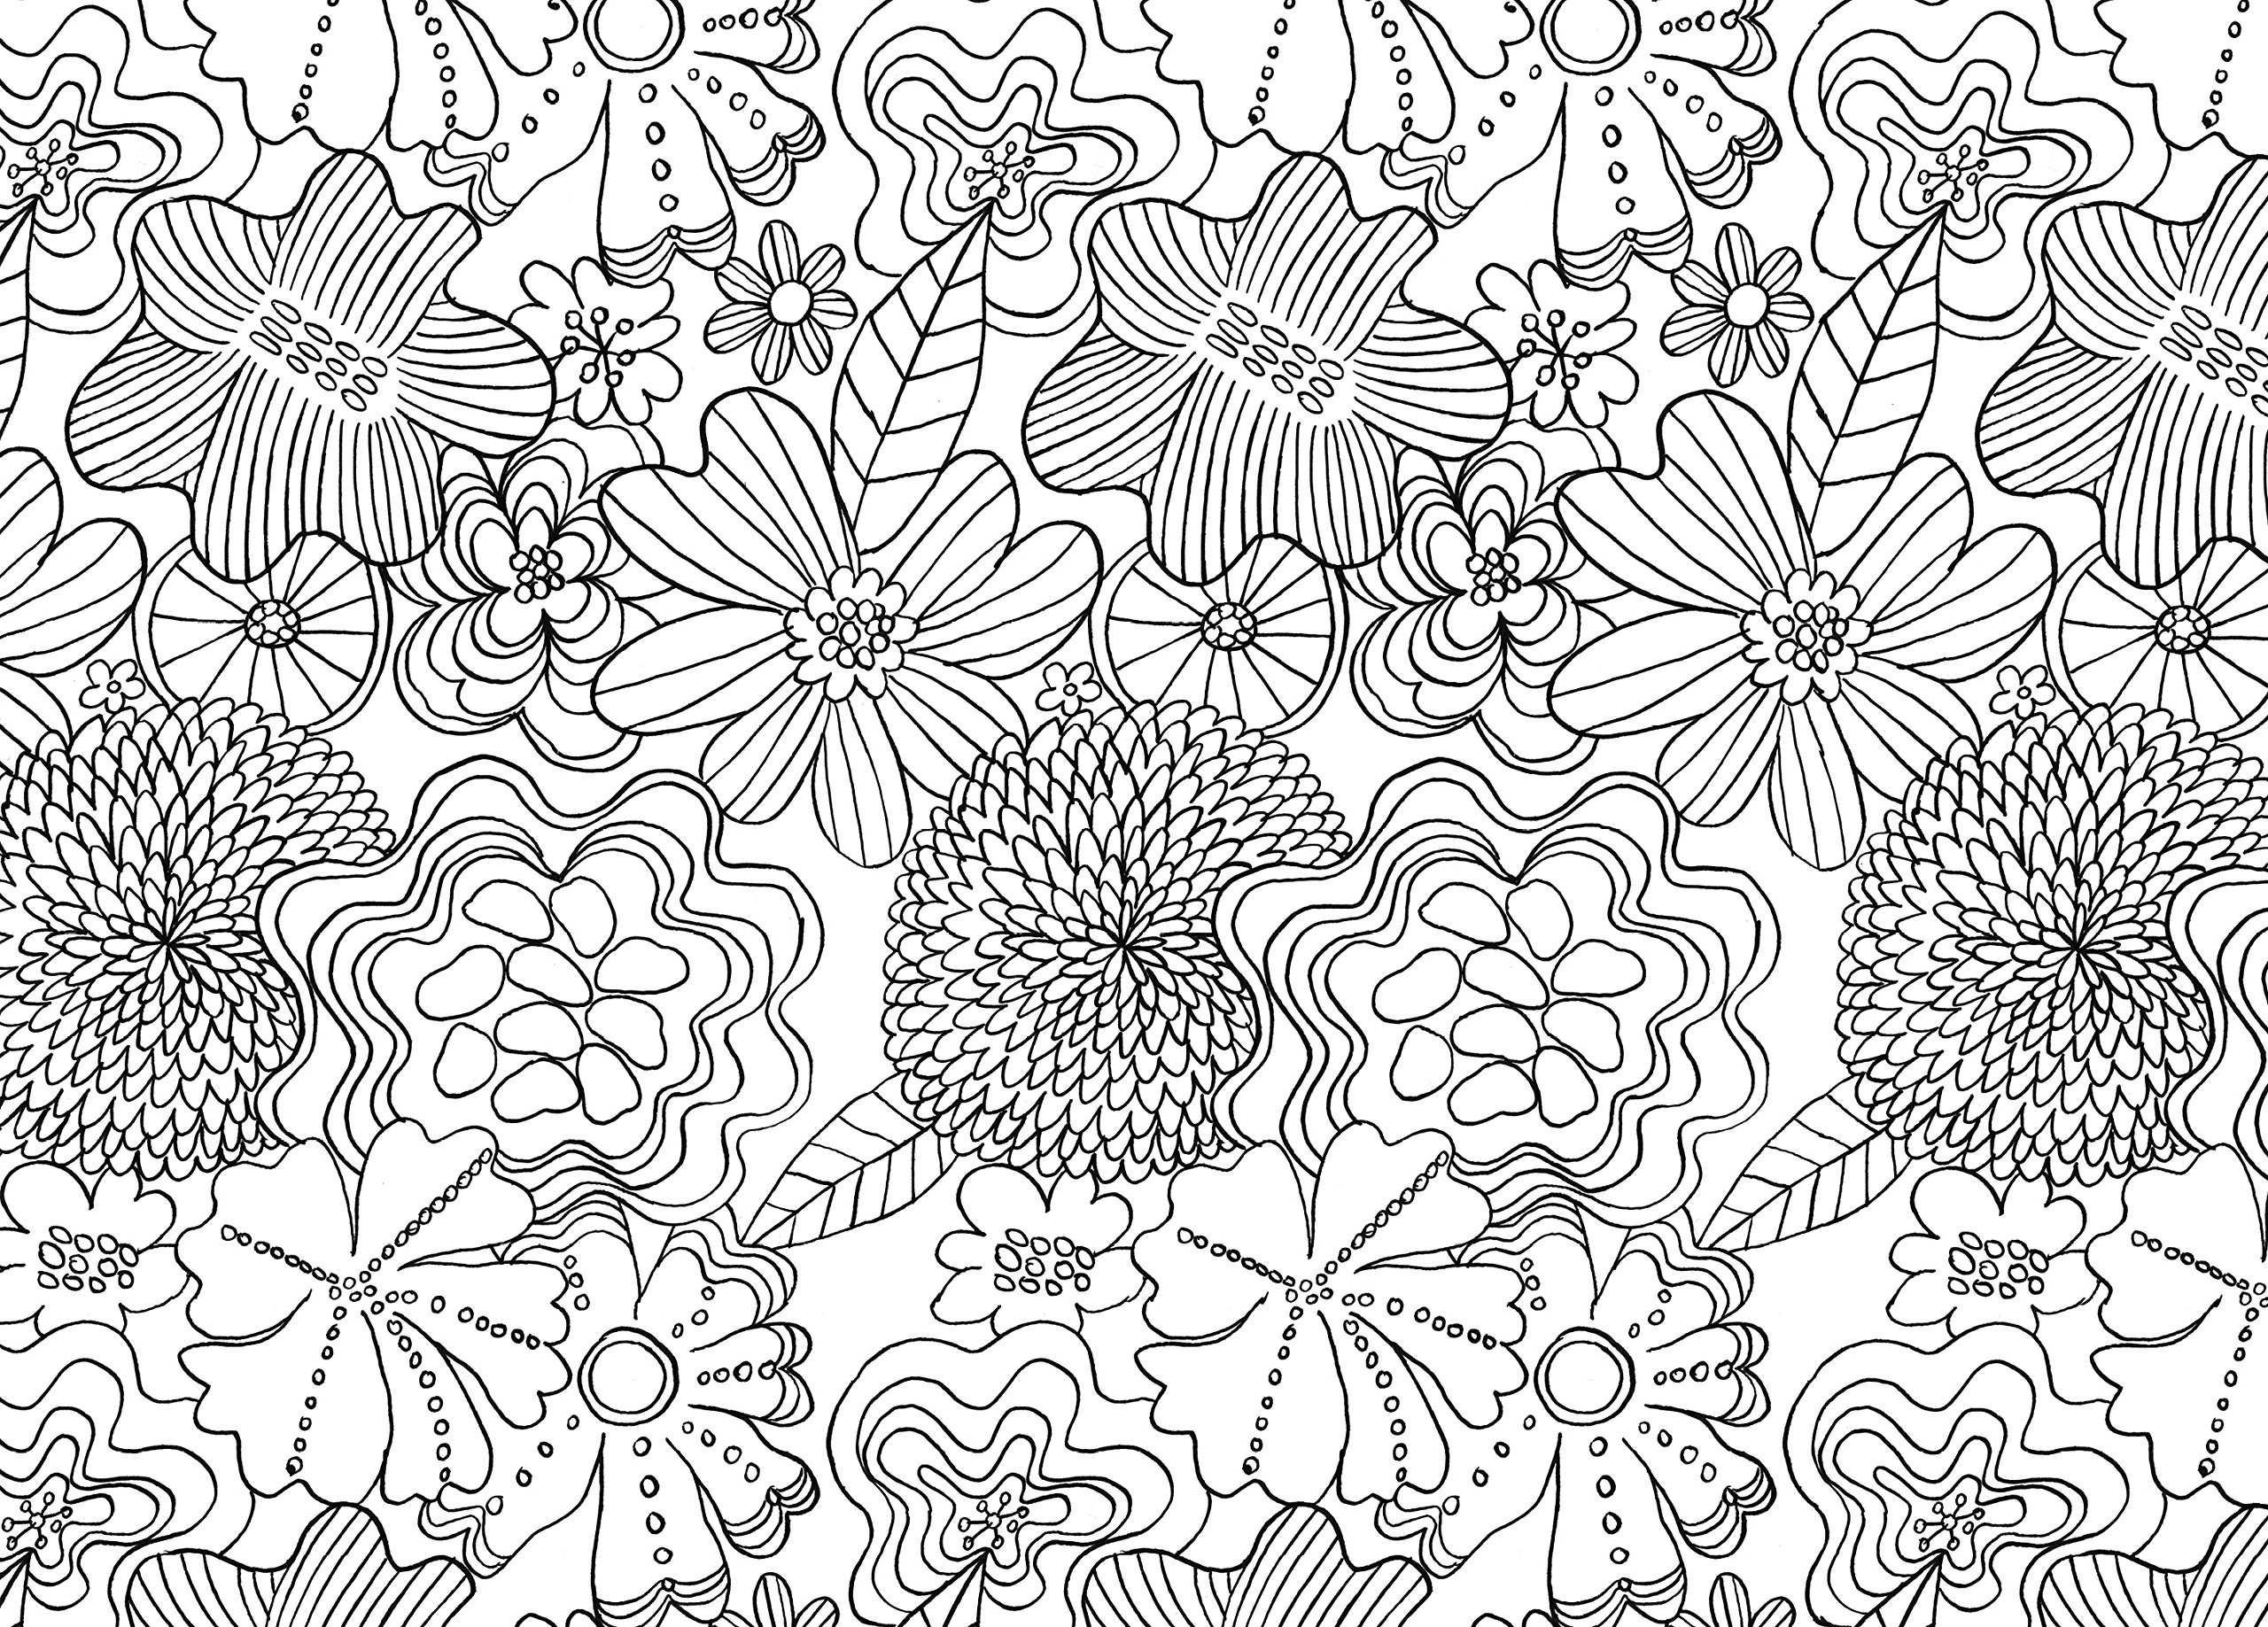 Christmas Colouring Pages Mindfulness With The Book Anti Stress Art Therapy For Busy